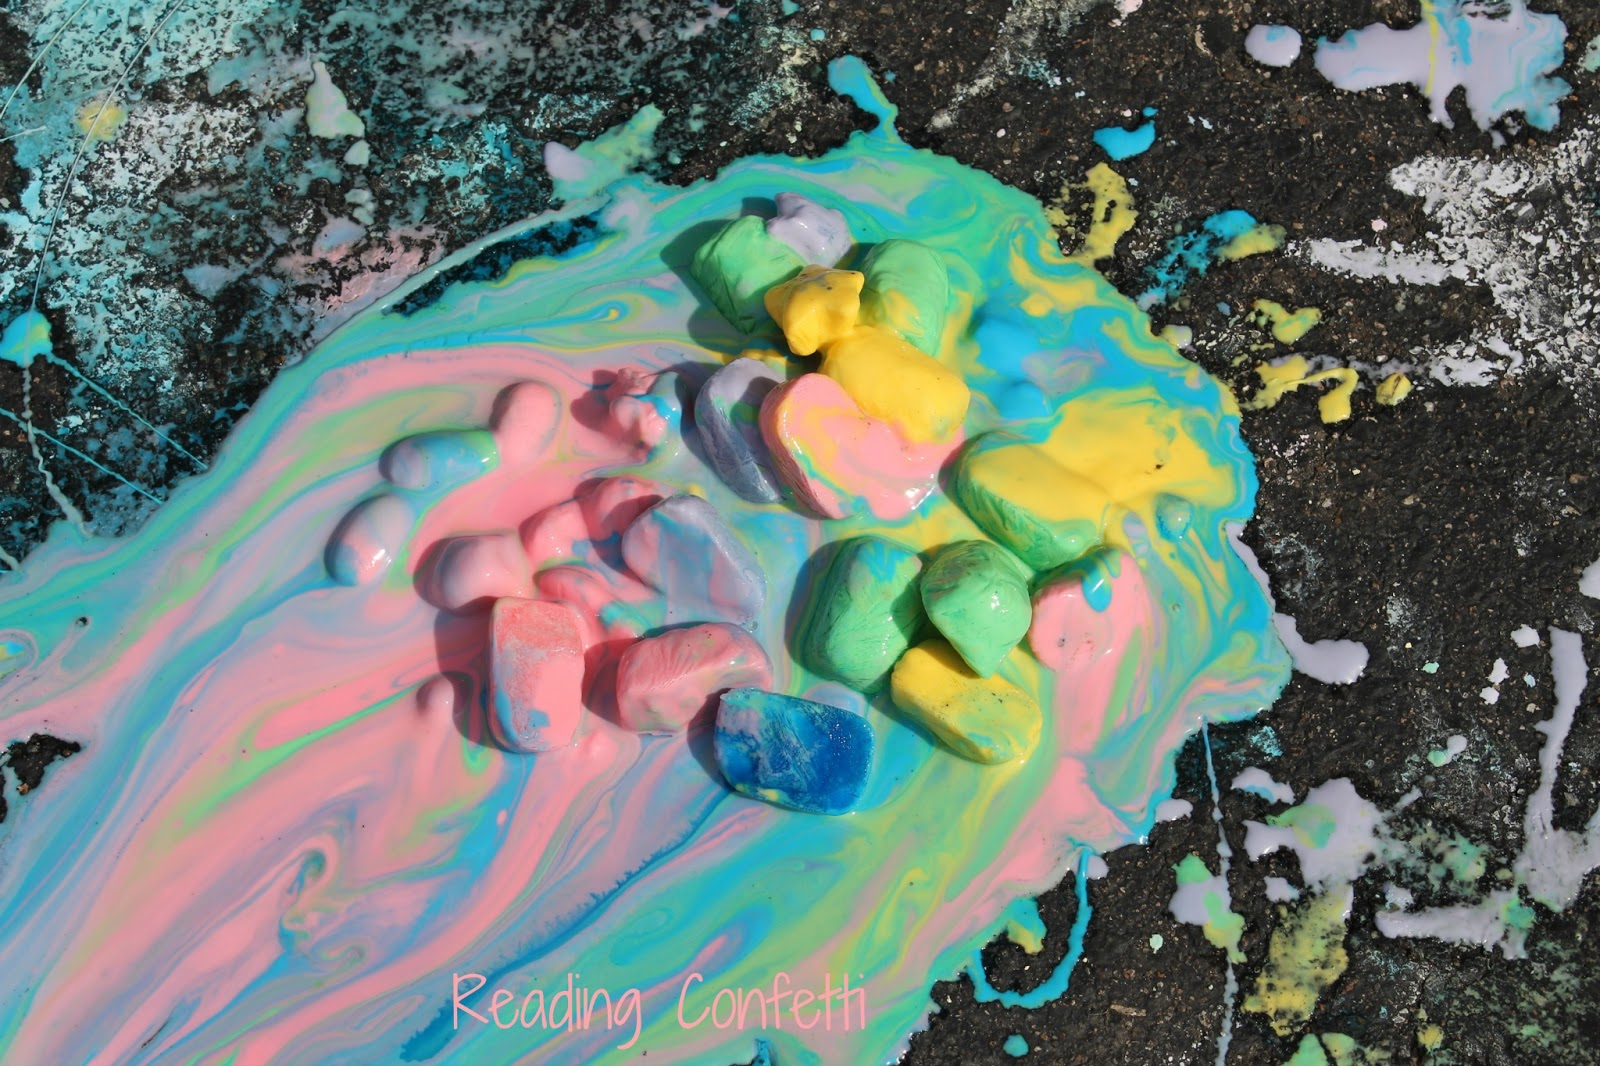 Ice chalk reading confetti - How to get exterior paint out of clothes ...